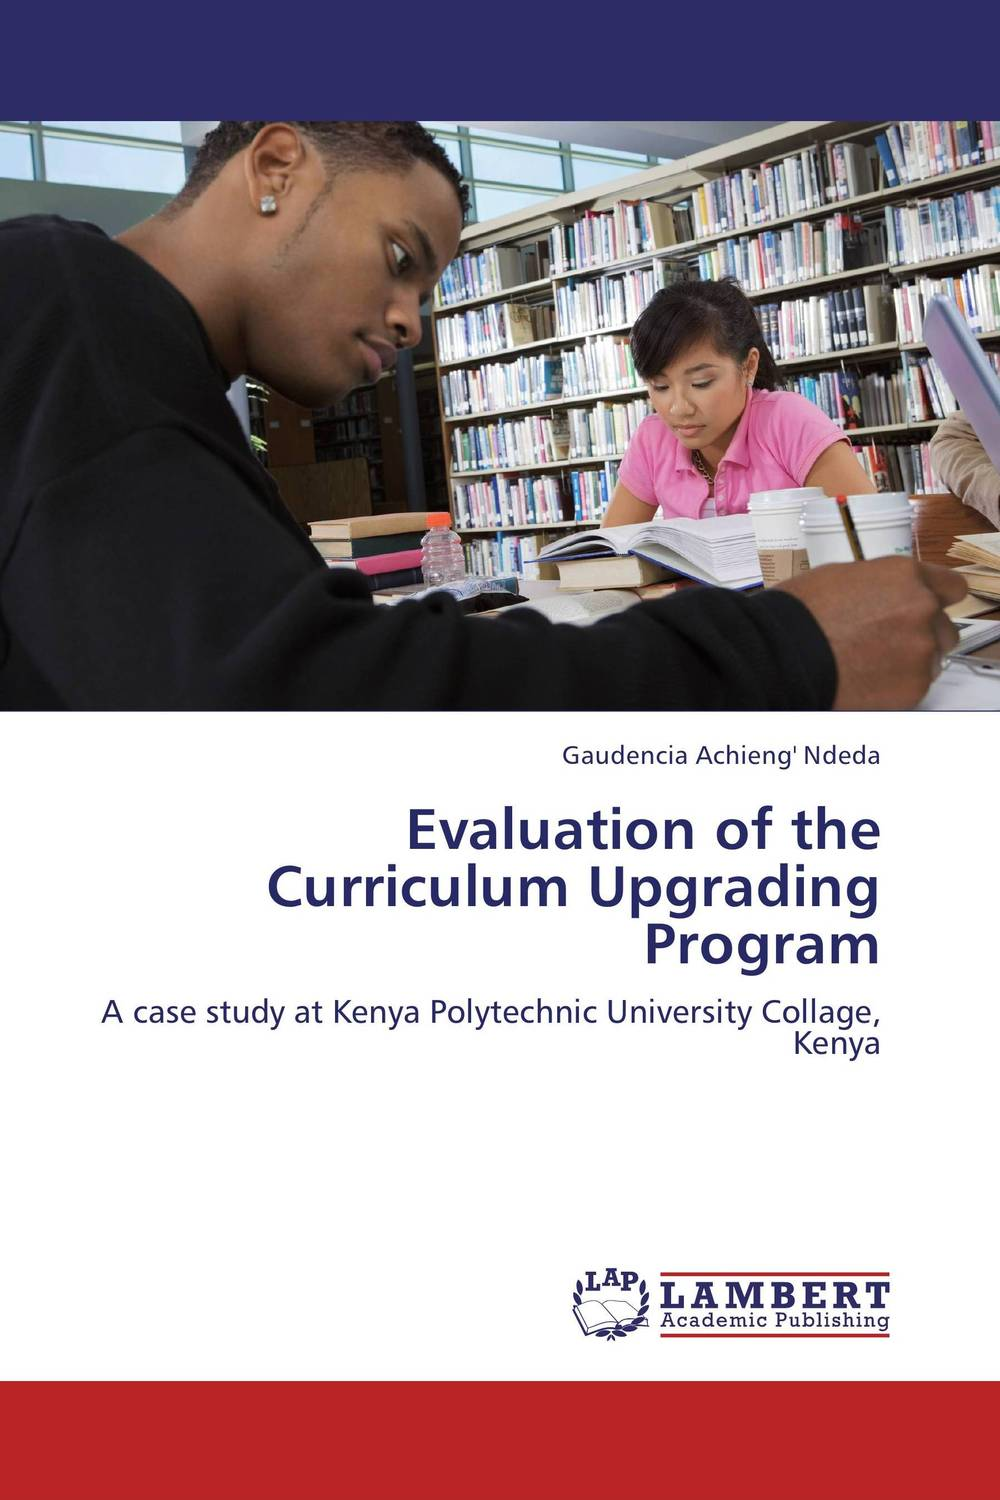 Evaluation of the Curriculum Upgrading Program